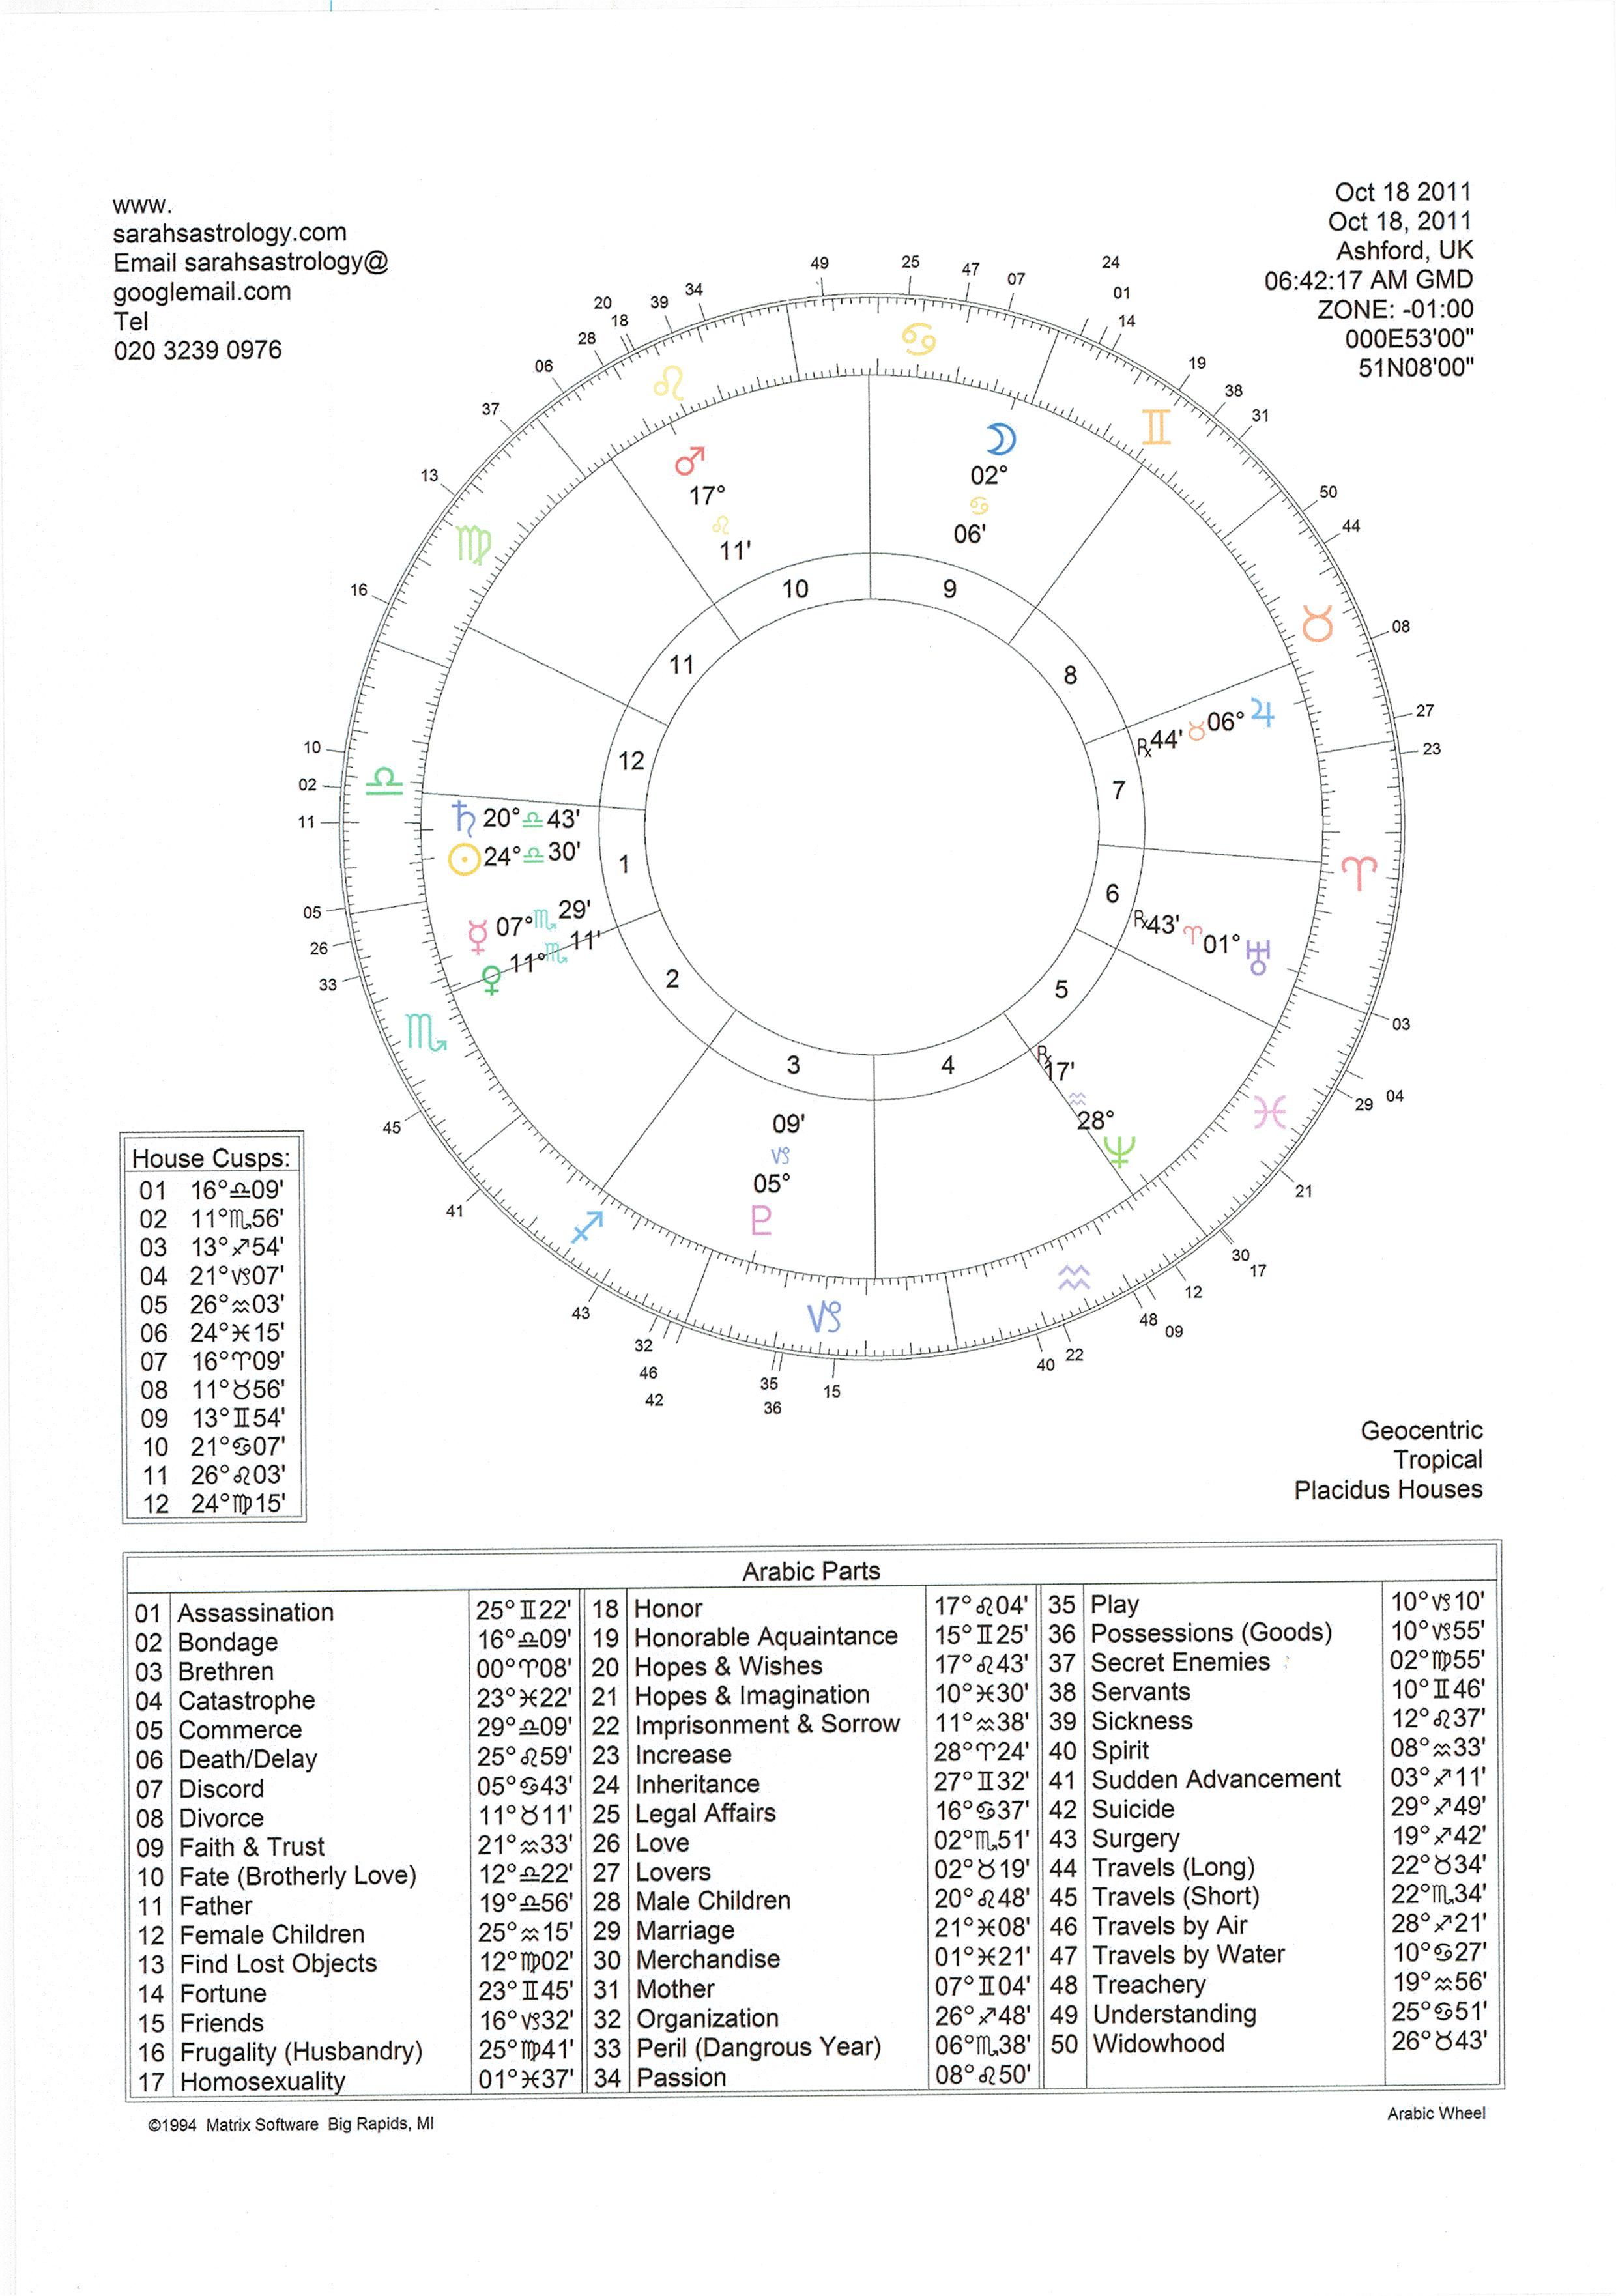 This is a sample of an Arabic Parts astrology chart that is